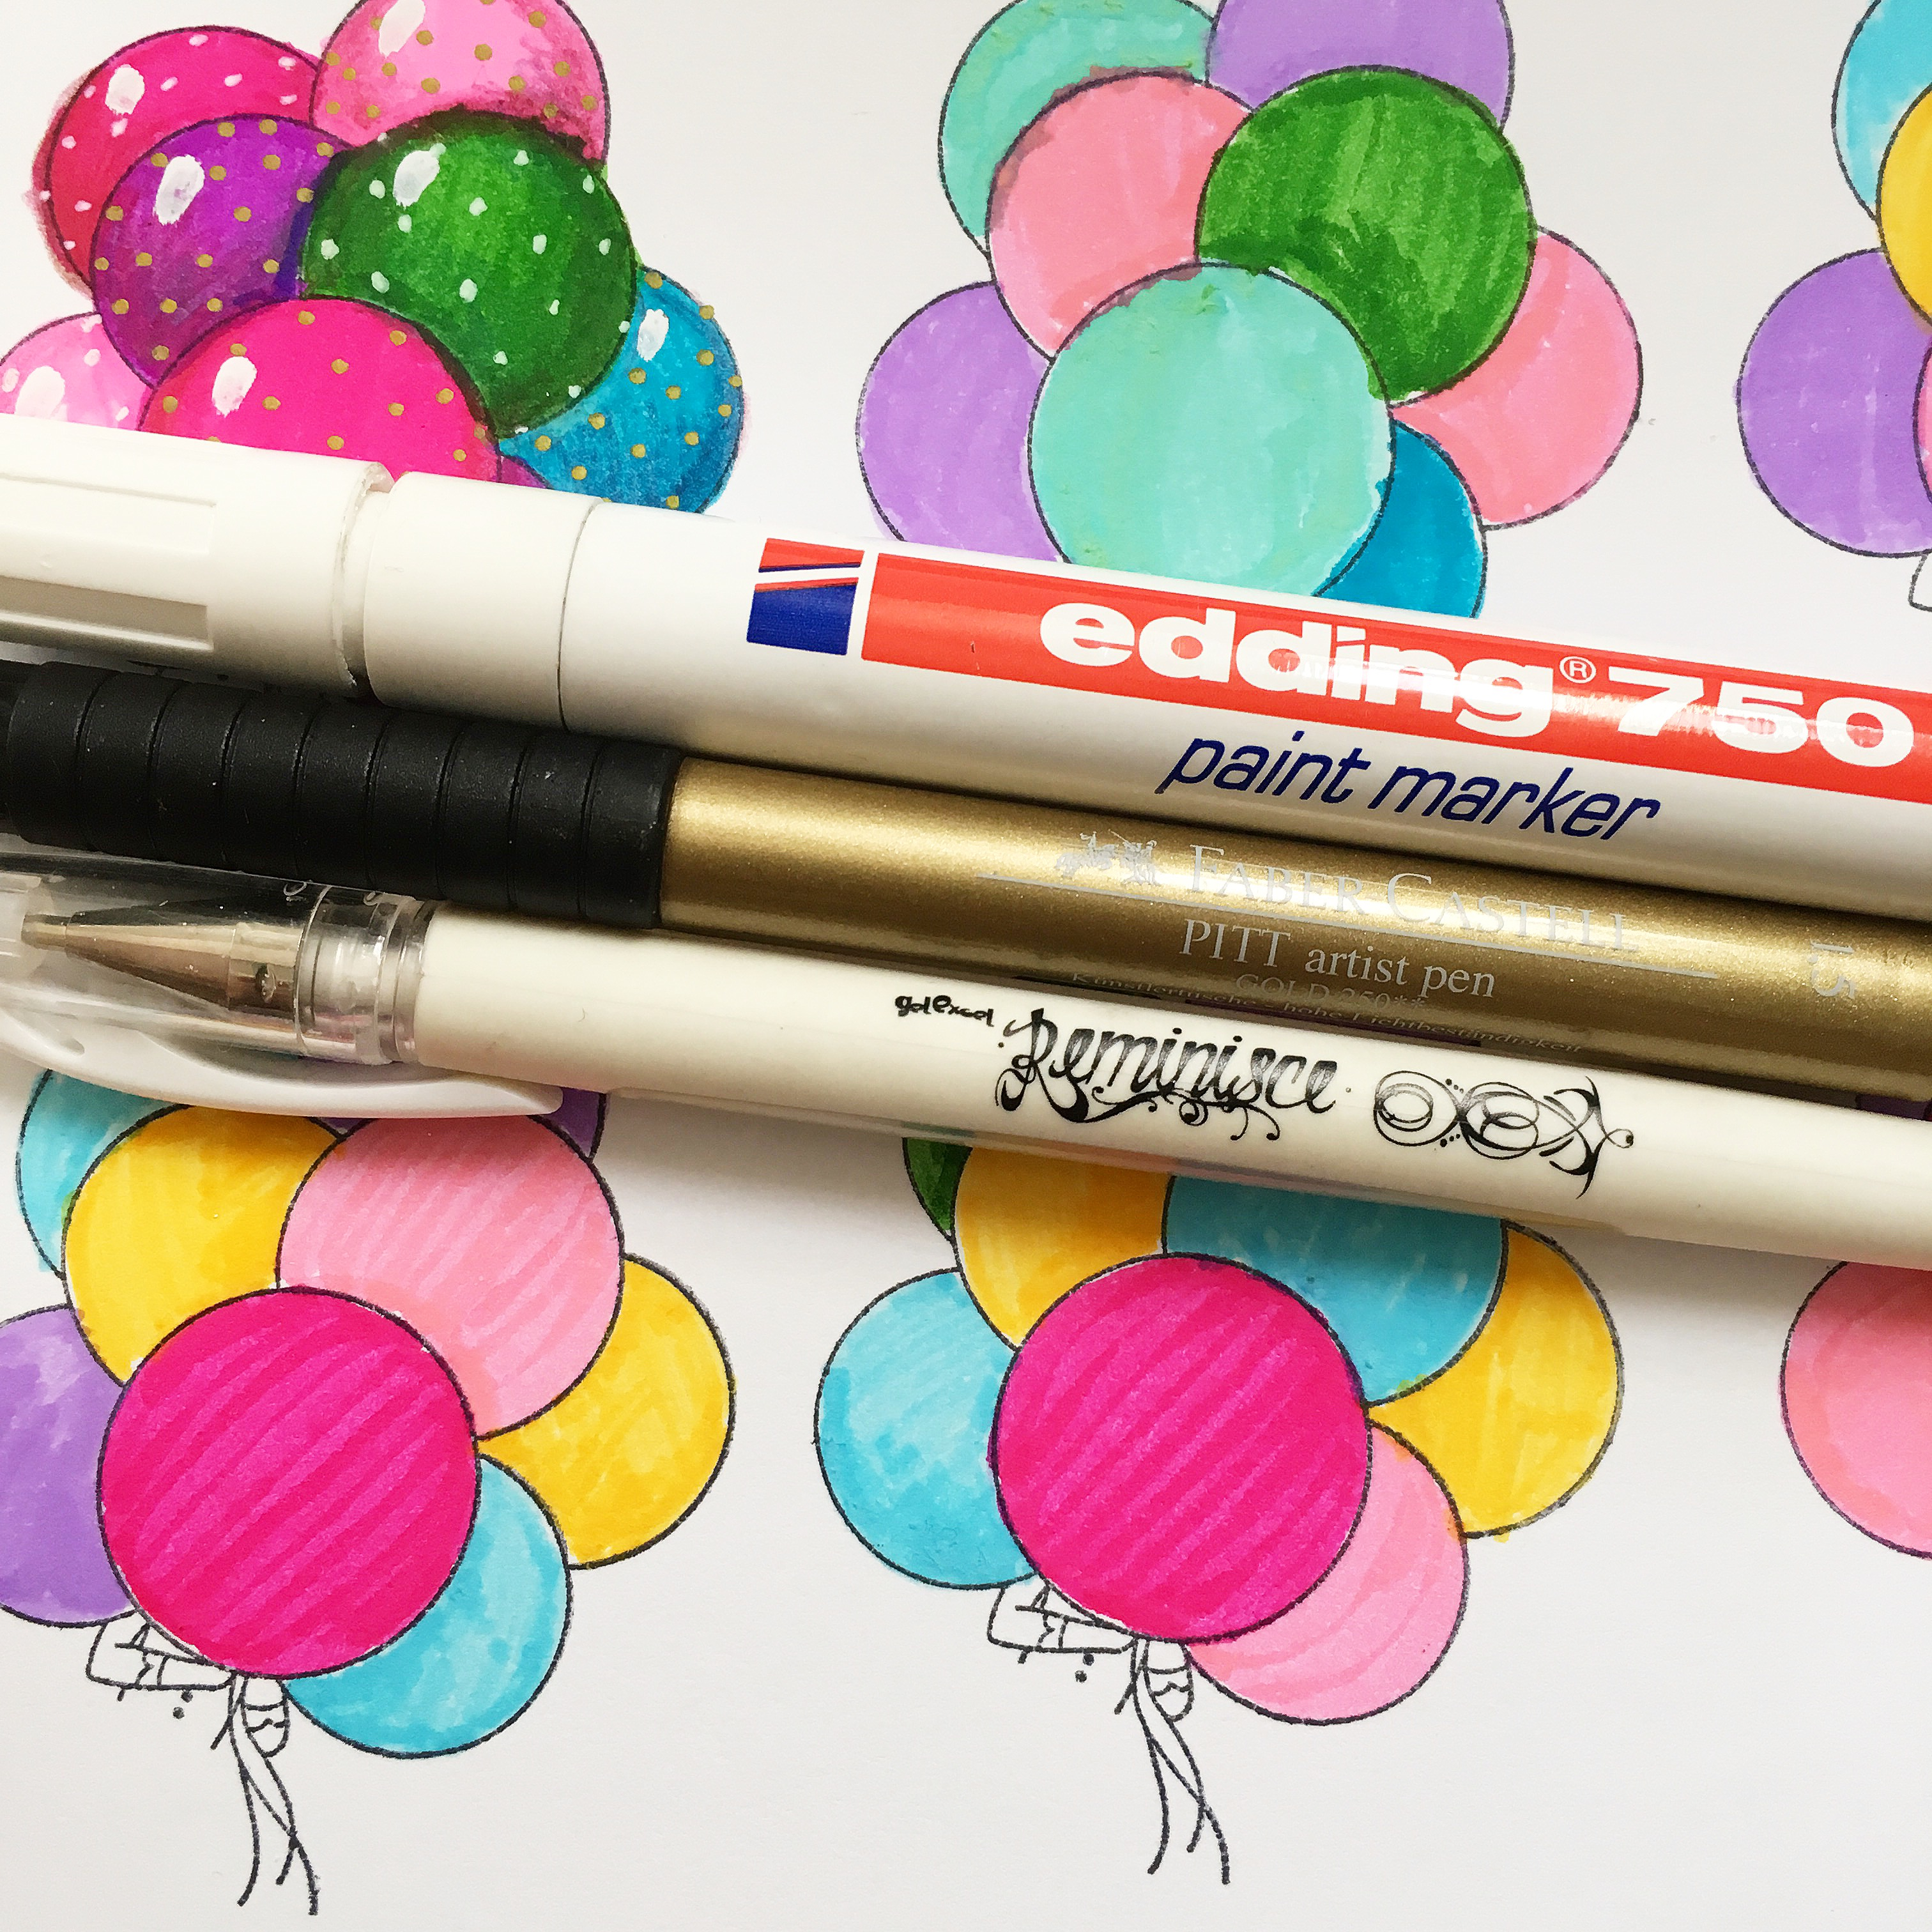 White paint marker, golden ink marker, white pen. In the background - coloured balloons in green, pink, blue, yellow and purple.